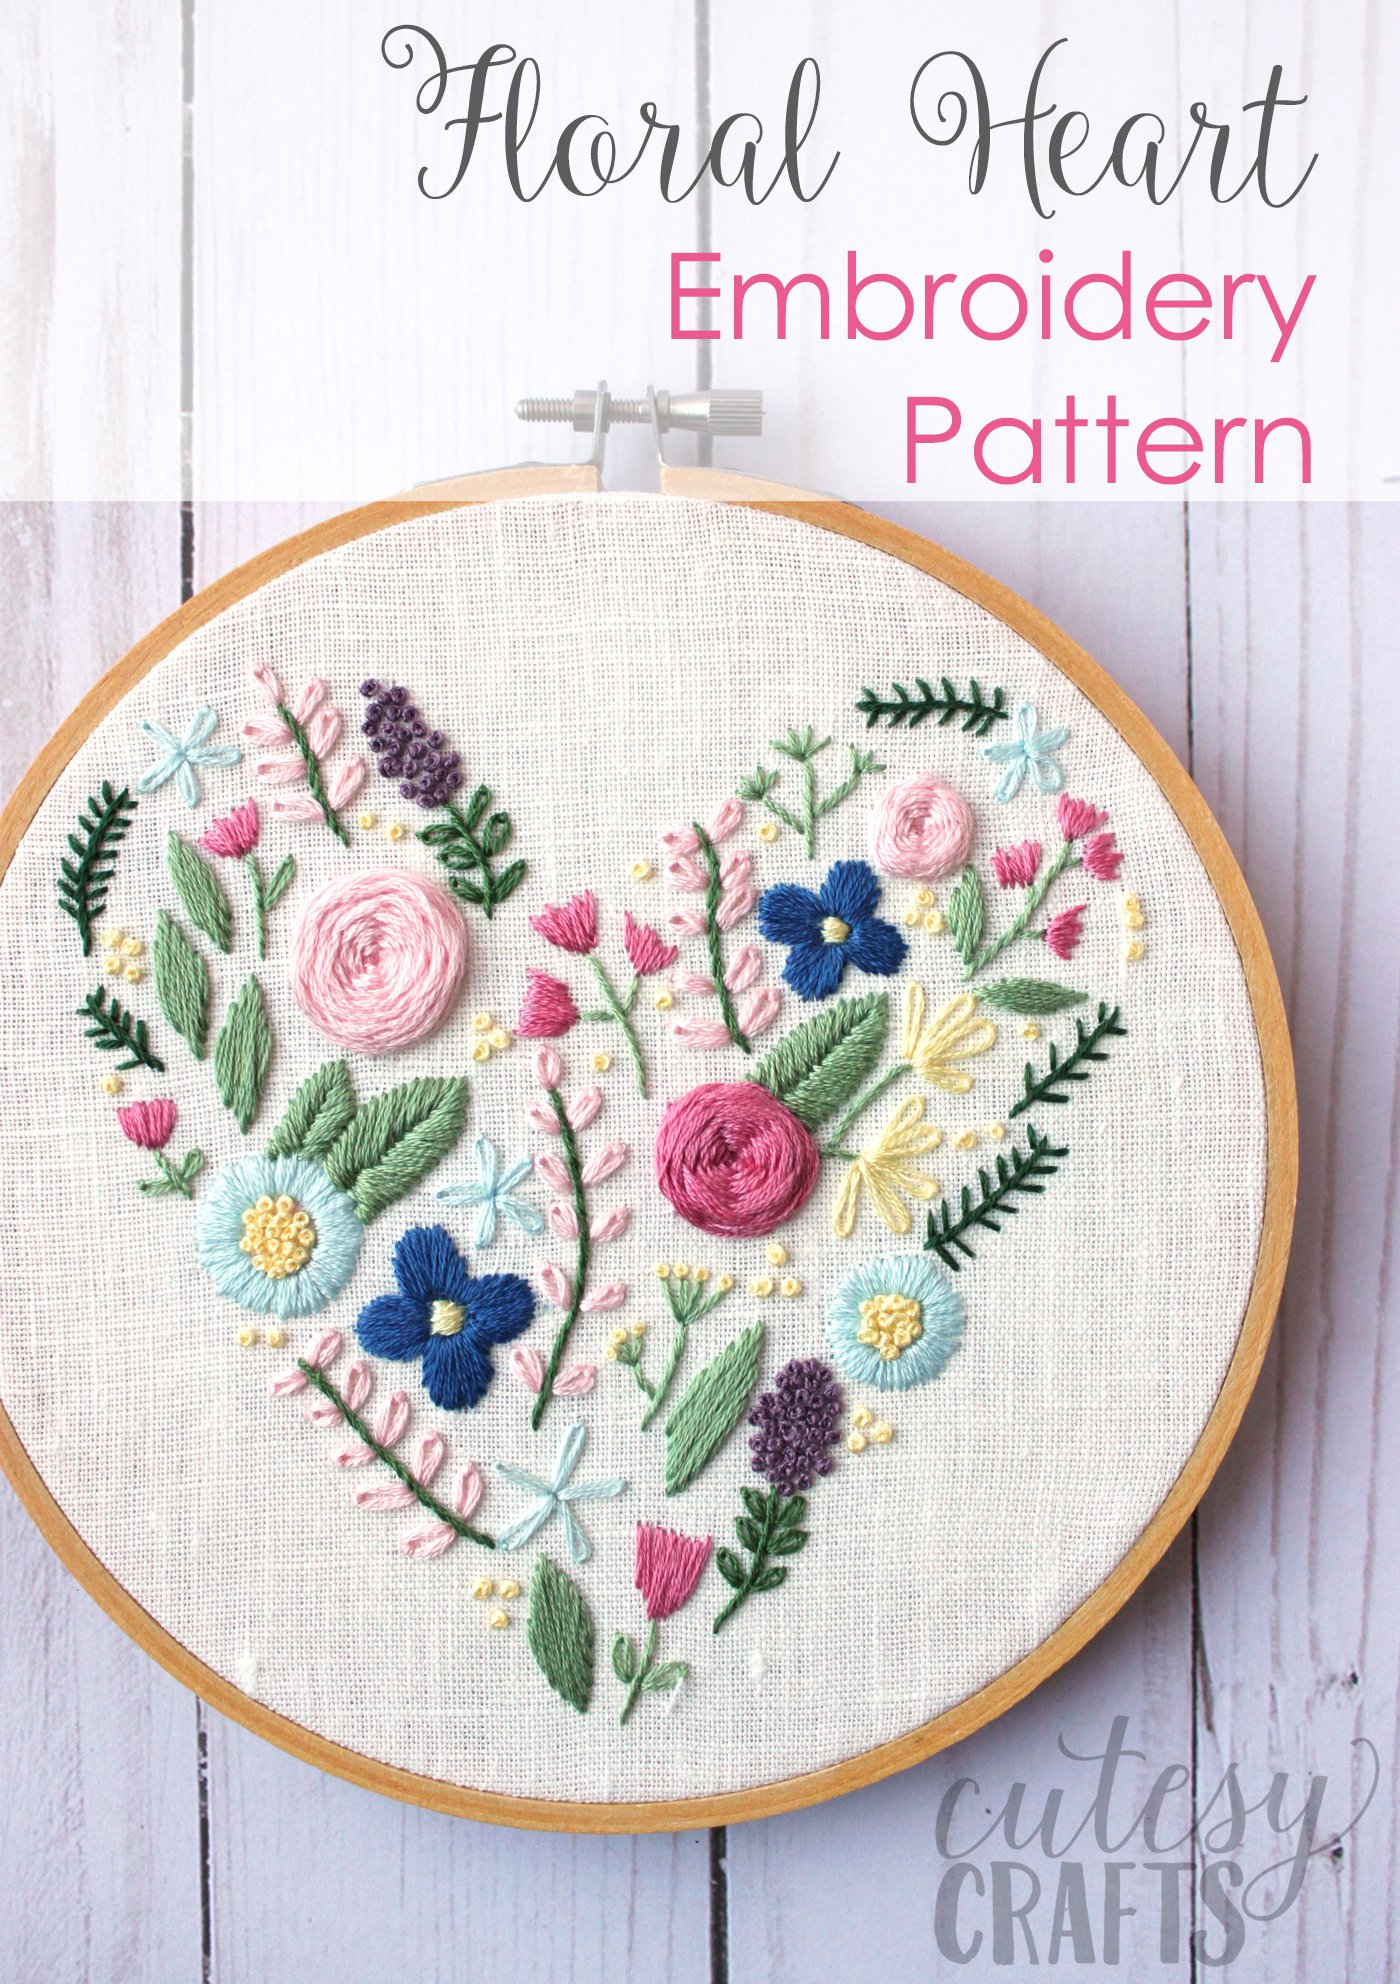 How To Design Embroidery Patterns For Machine Floral Heart Hand Embroidery Pattern The Polka Dot Chair